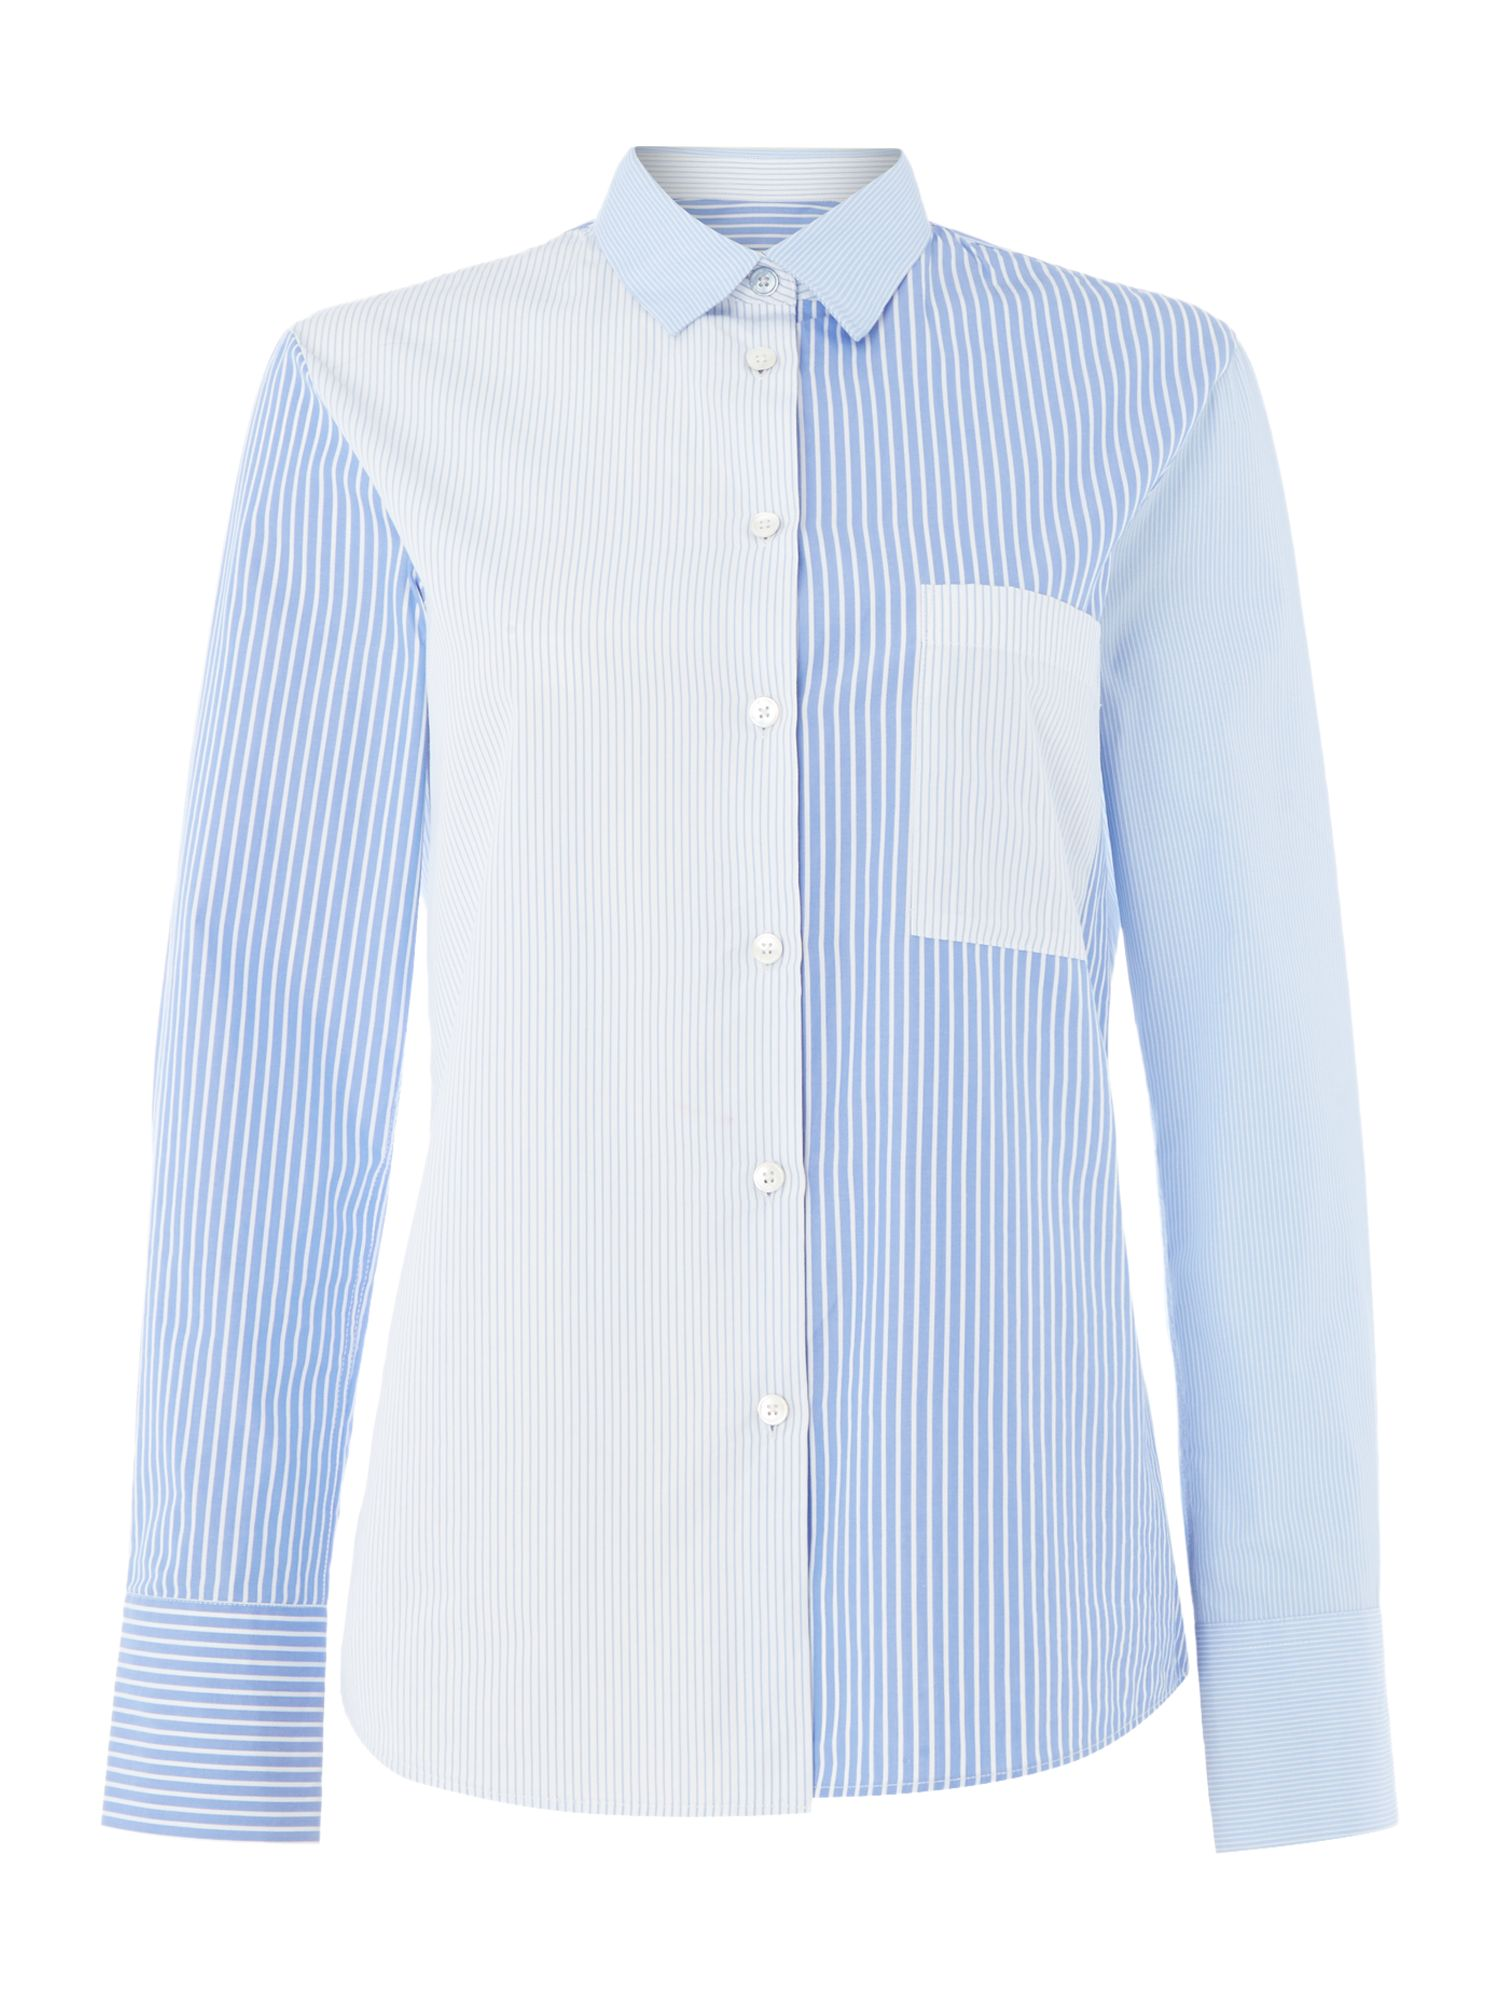 PS By Paul Smith Striped shirt, Light Blue